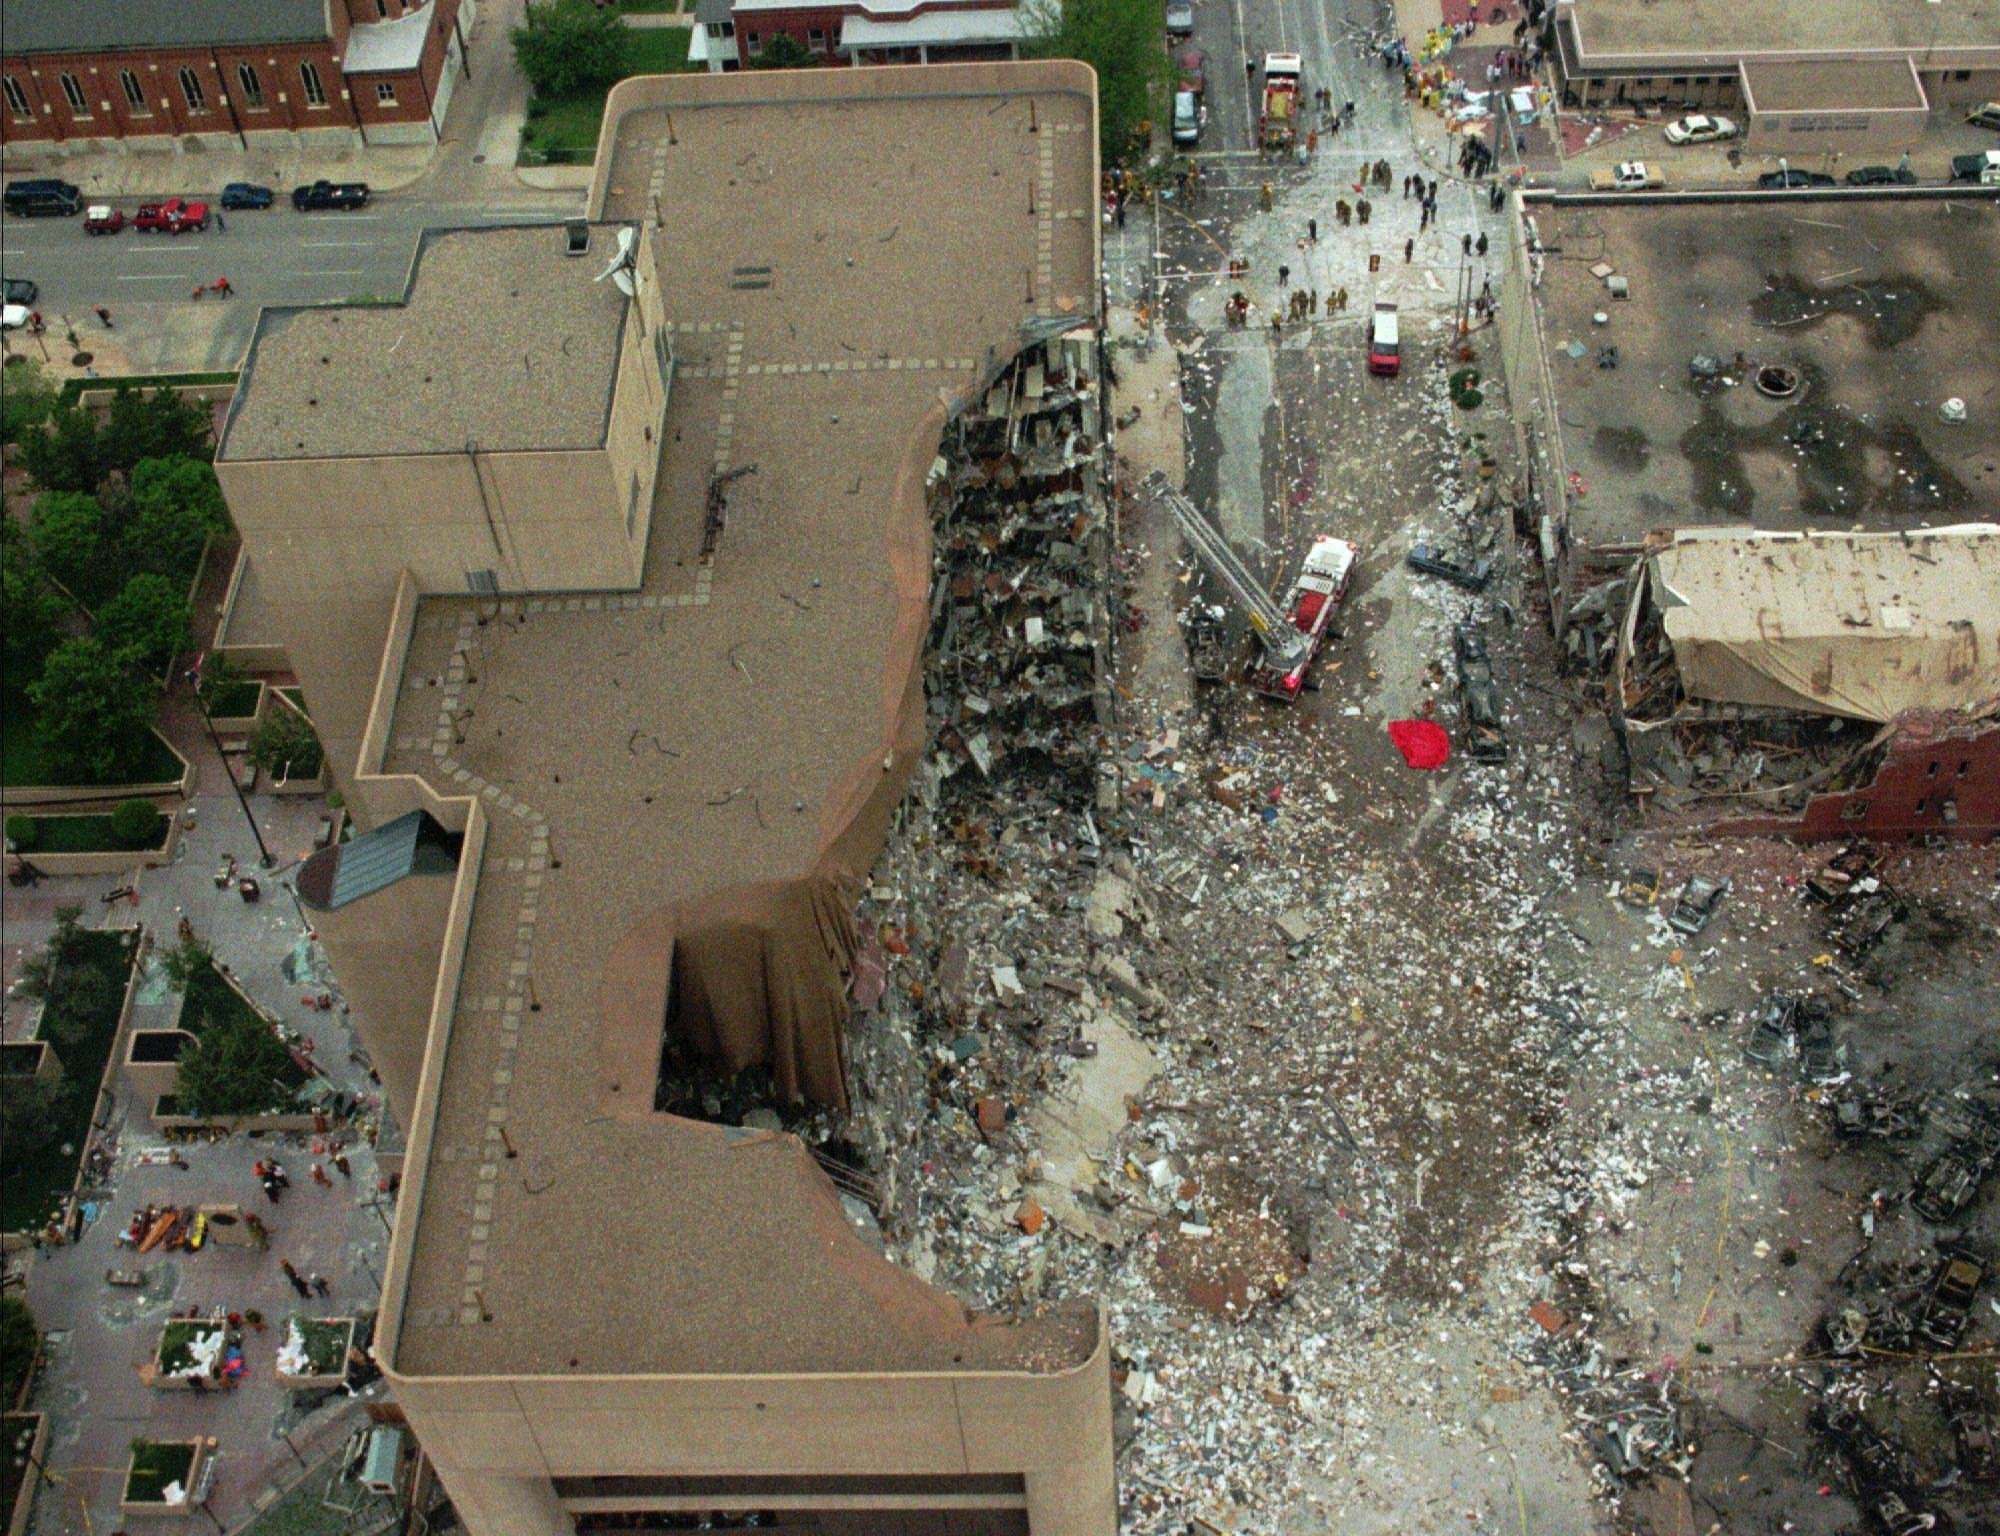 an overview of the ruby ridge waco and the oklahoma city bombing Timothy mcveigh cited both ruby ridge and waco as motivators when he bombed the federal building in oklahoma city in 1995 ruby ridge has been cited often by militia and patriot groups since.